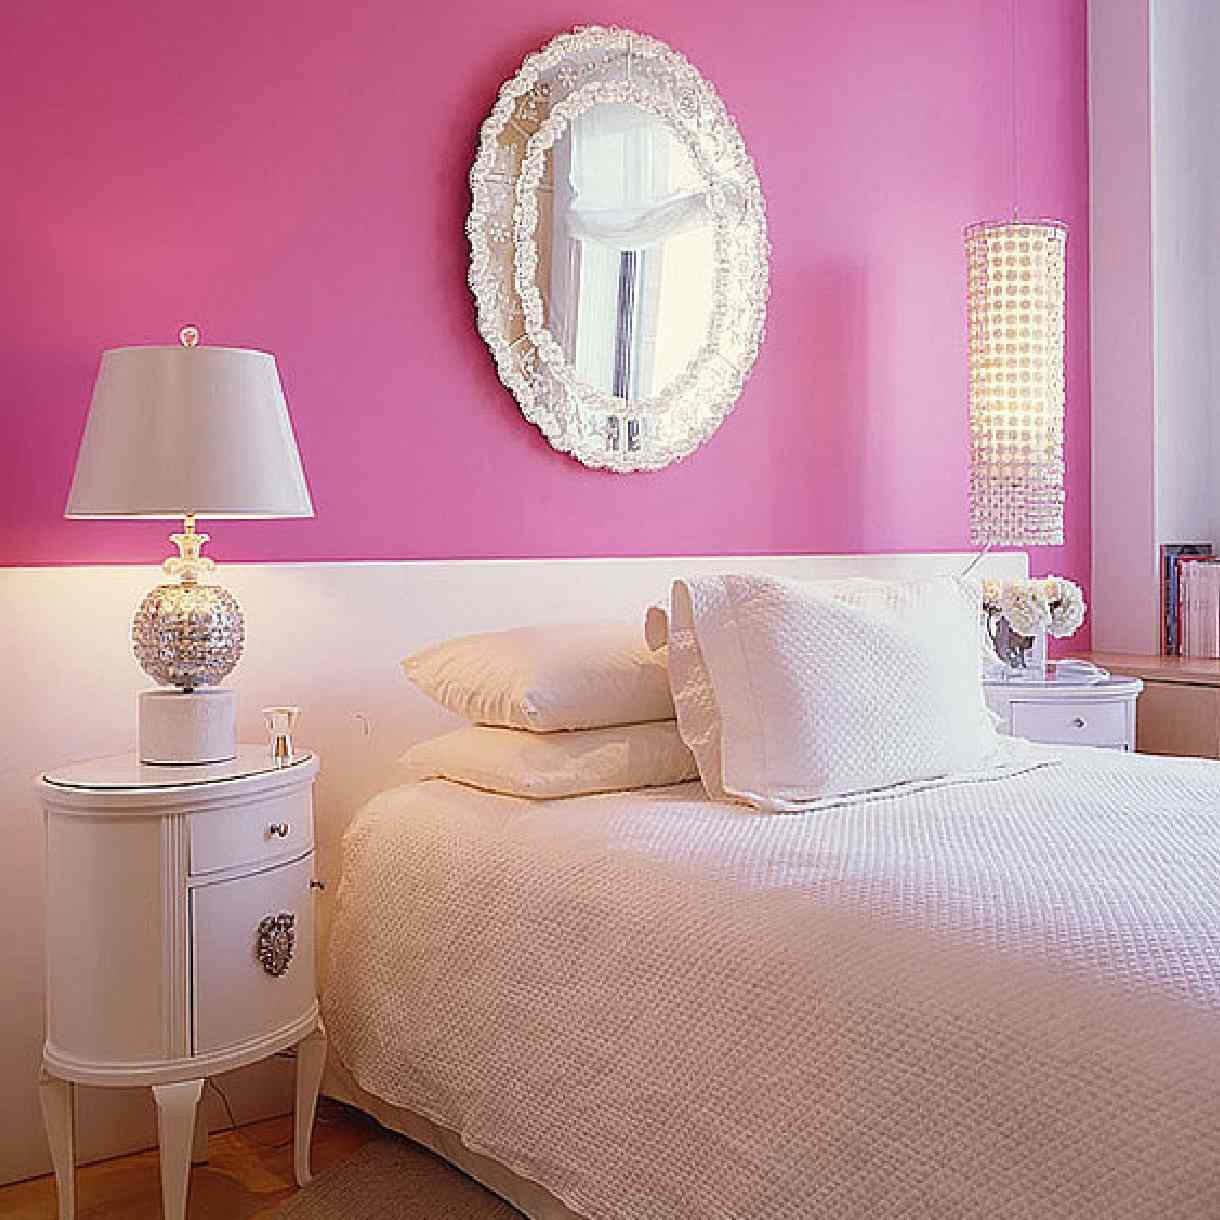 pink-interior-design-beautiful-pink-bedroom-interior-design-60386.jpg